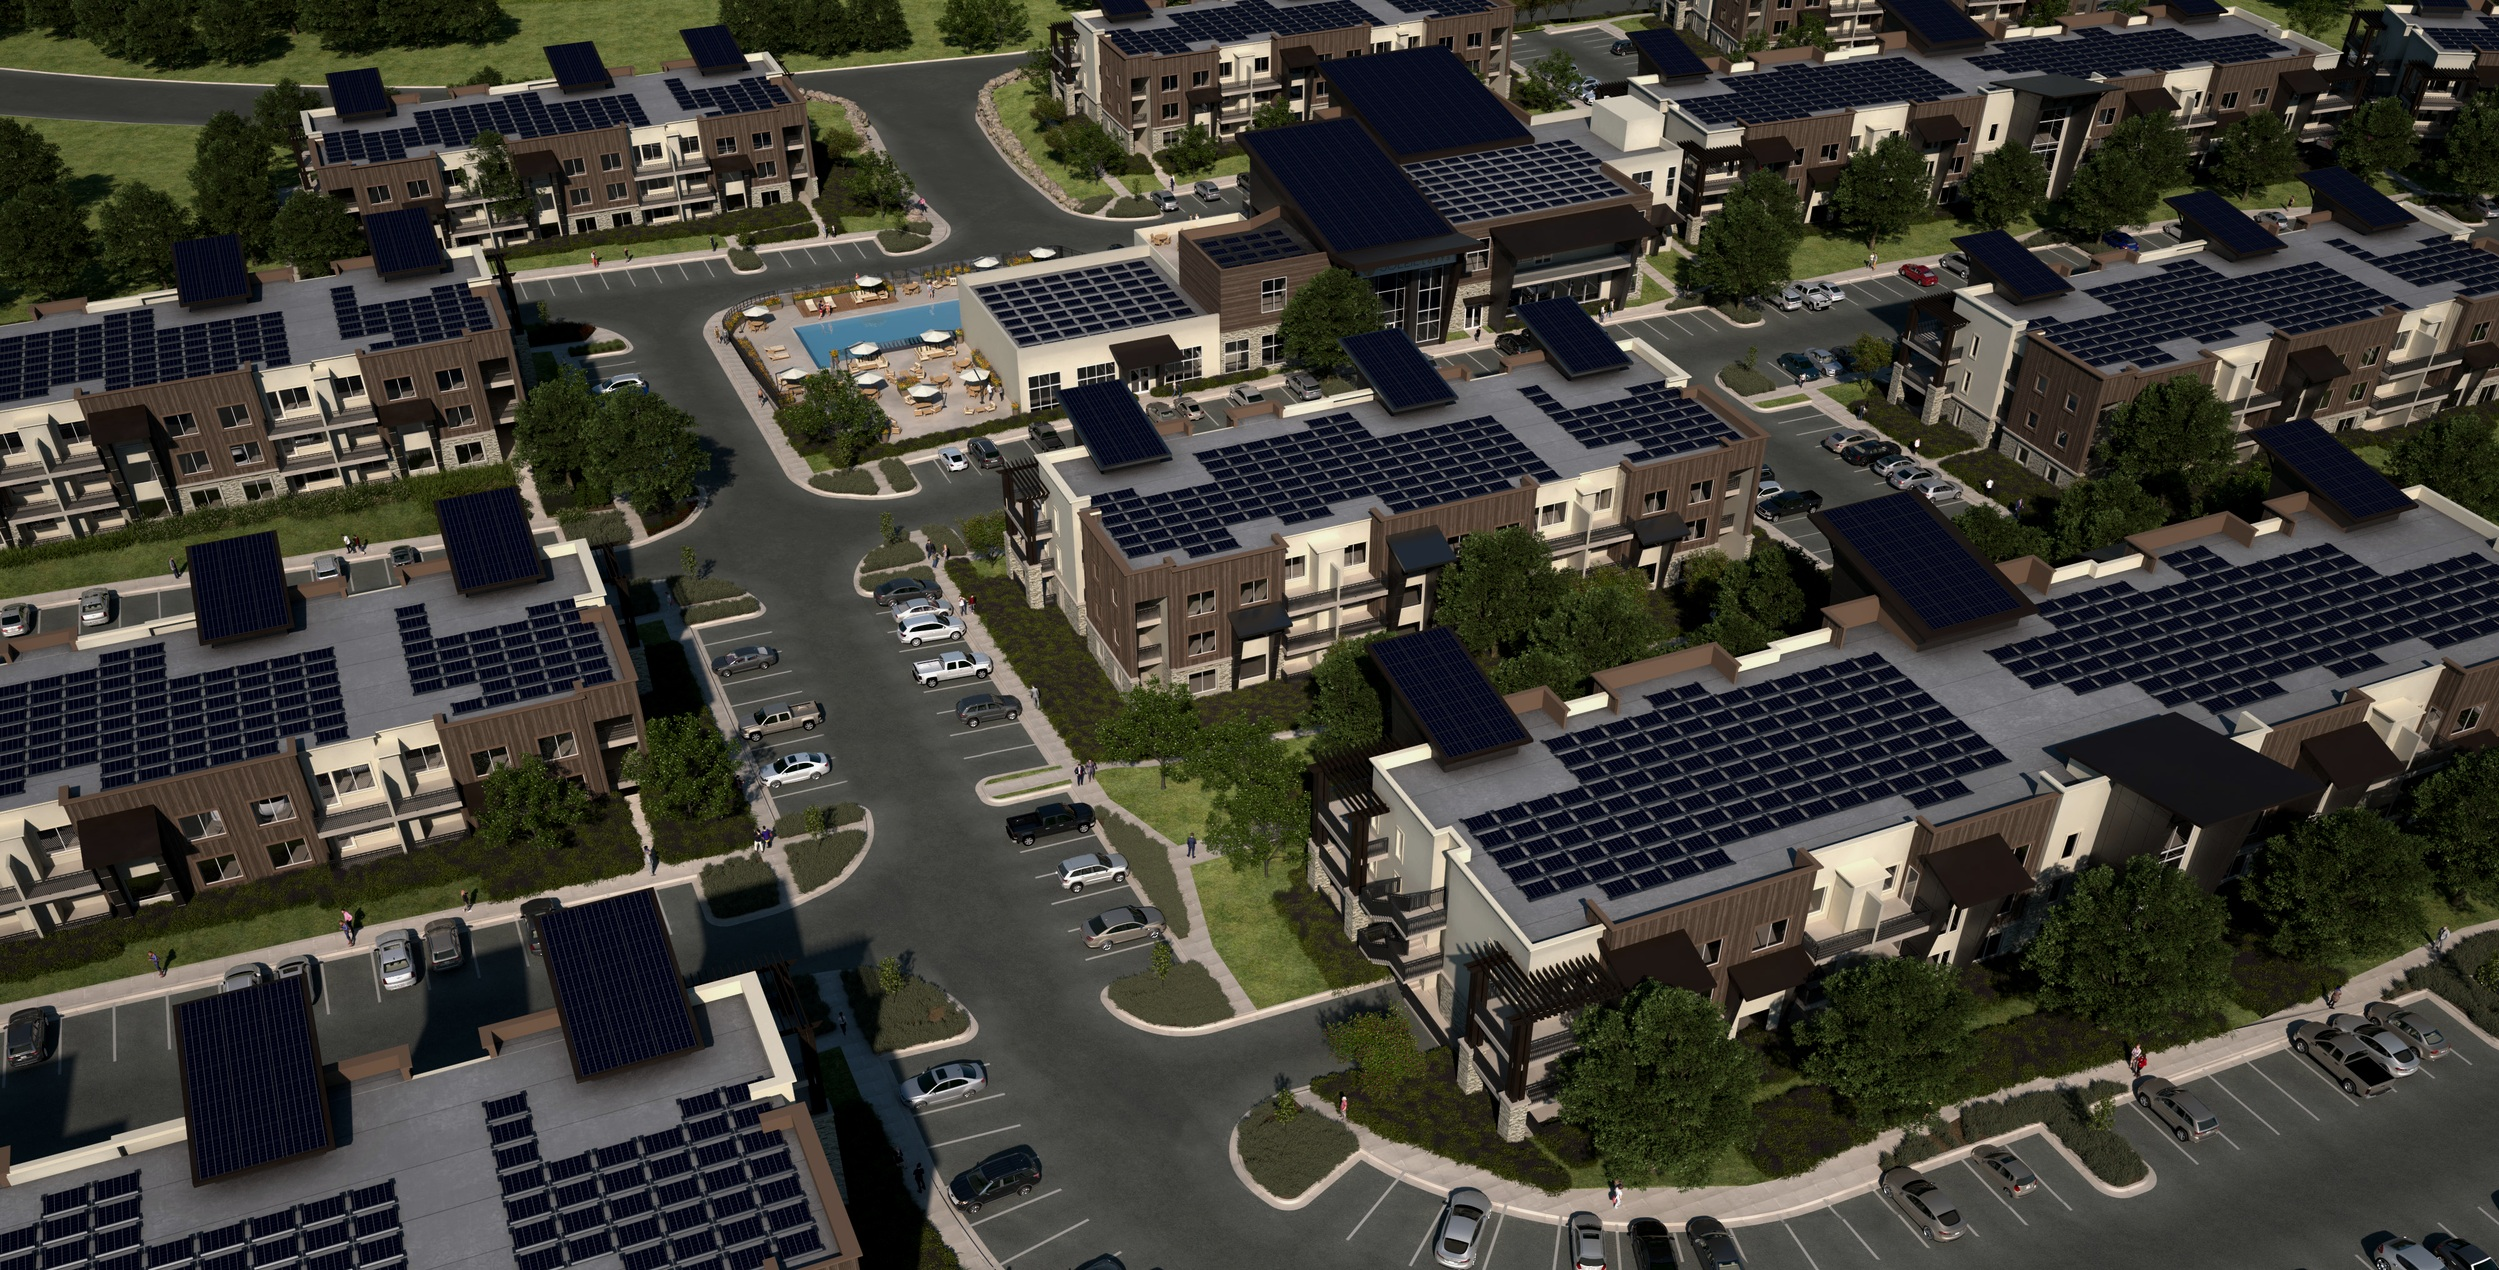 *The First of its Kind - A residential solar and battery storage project that America has never seen before. Auric Energy and our partners are leading the energy revolution.